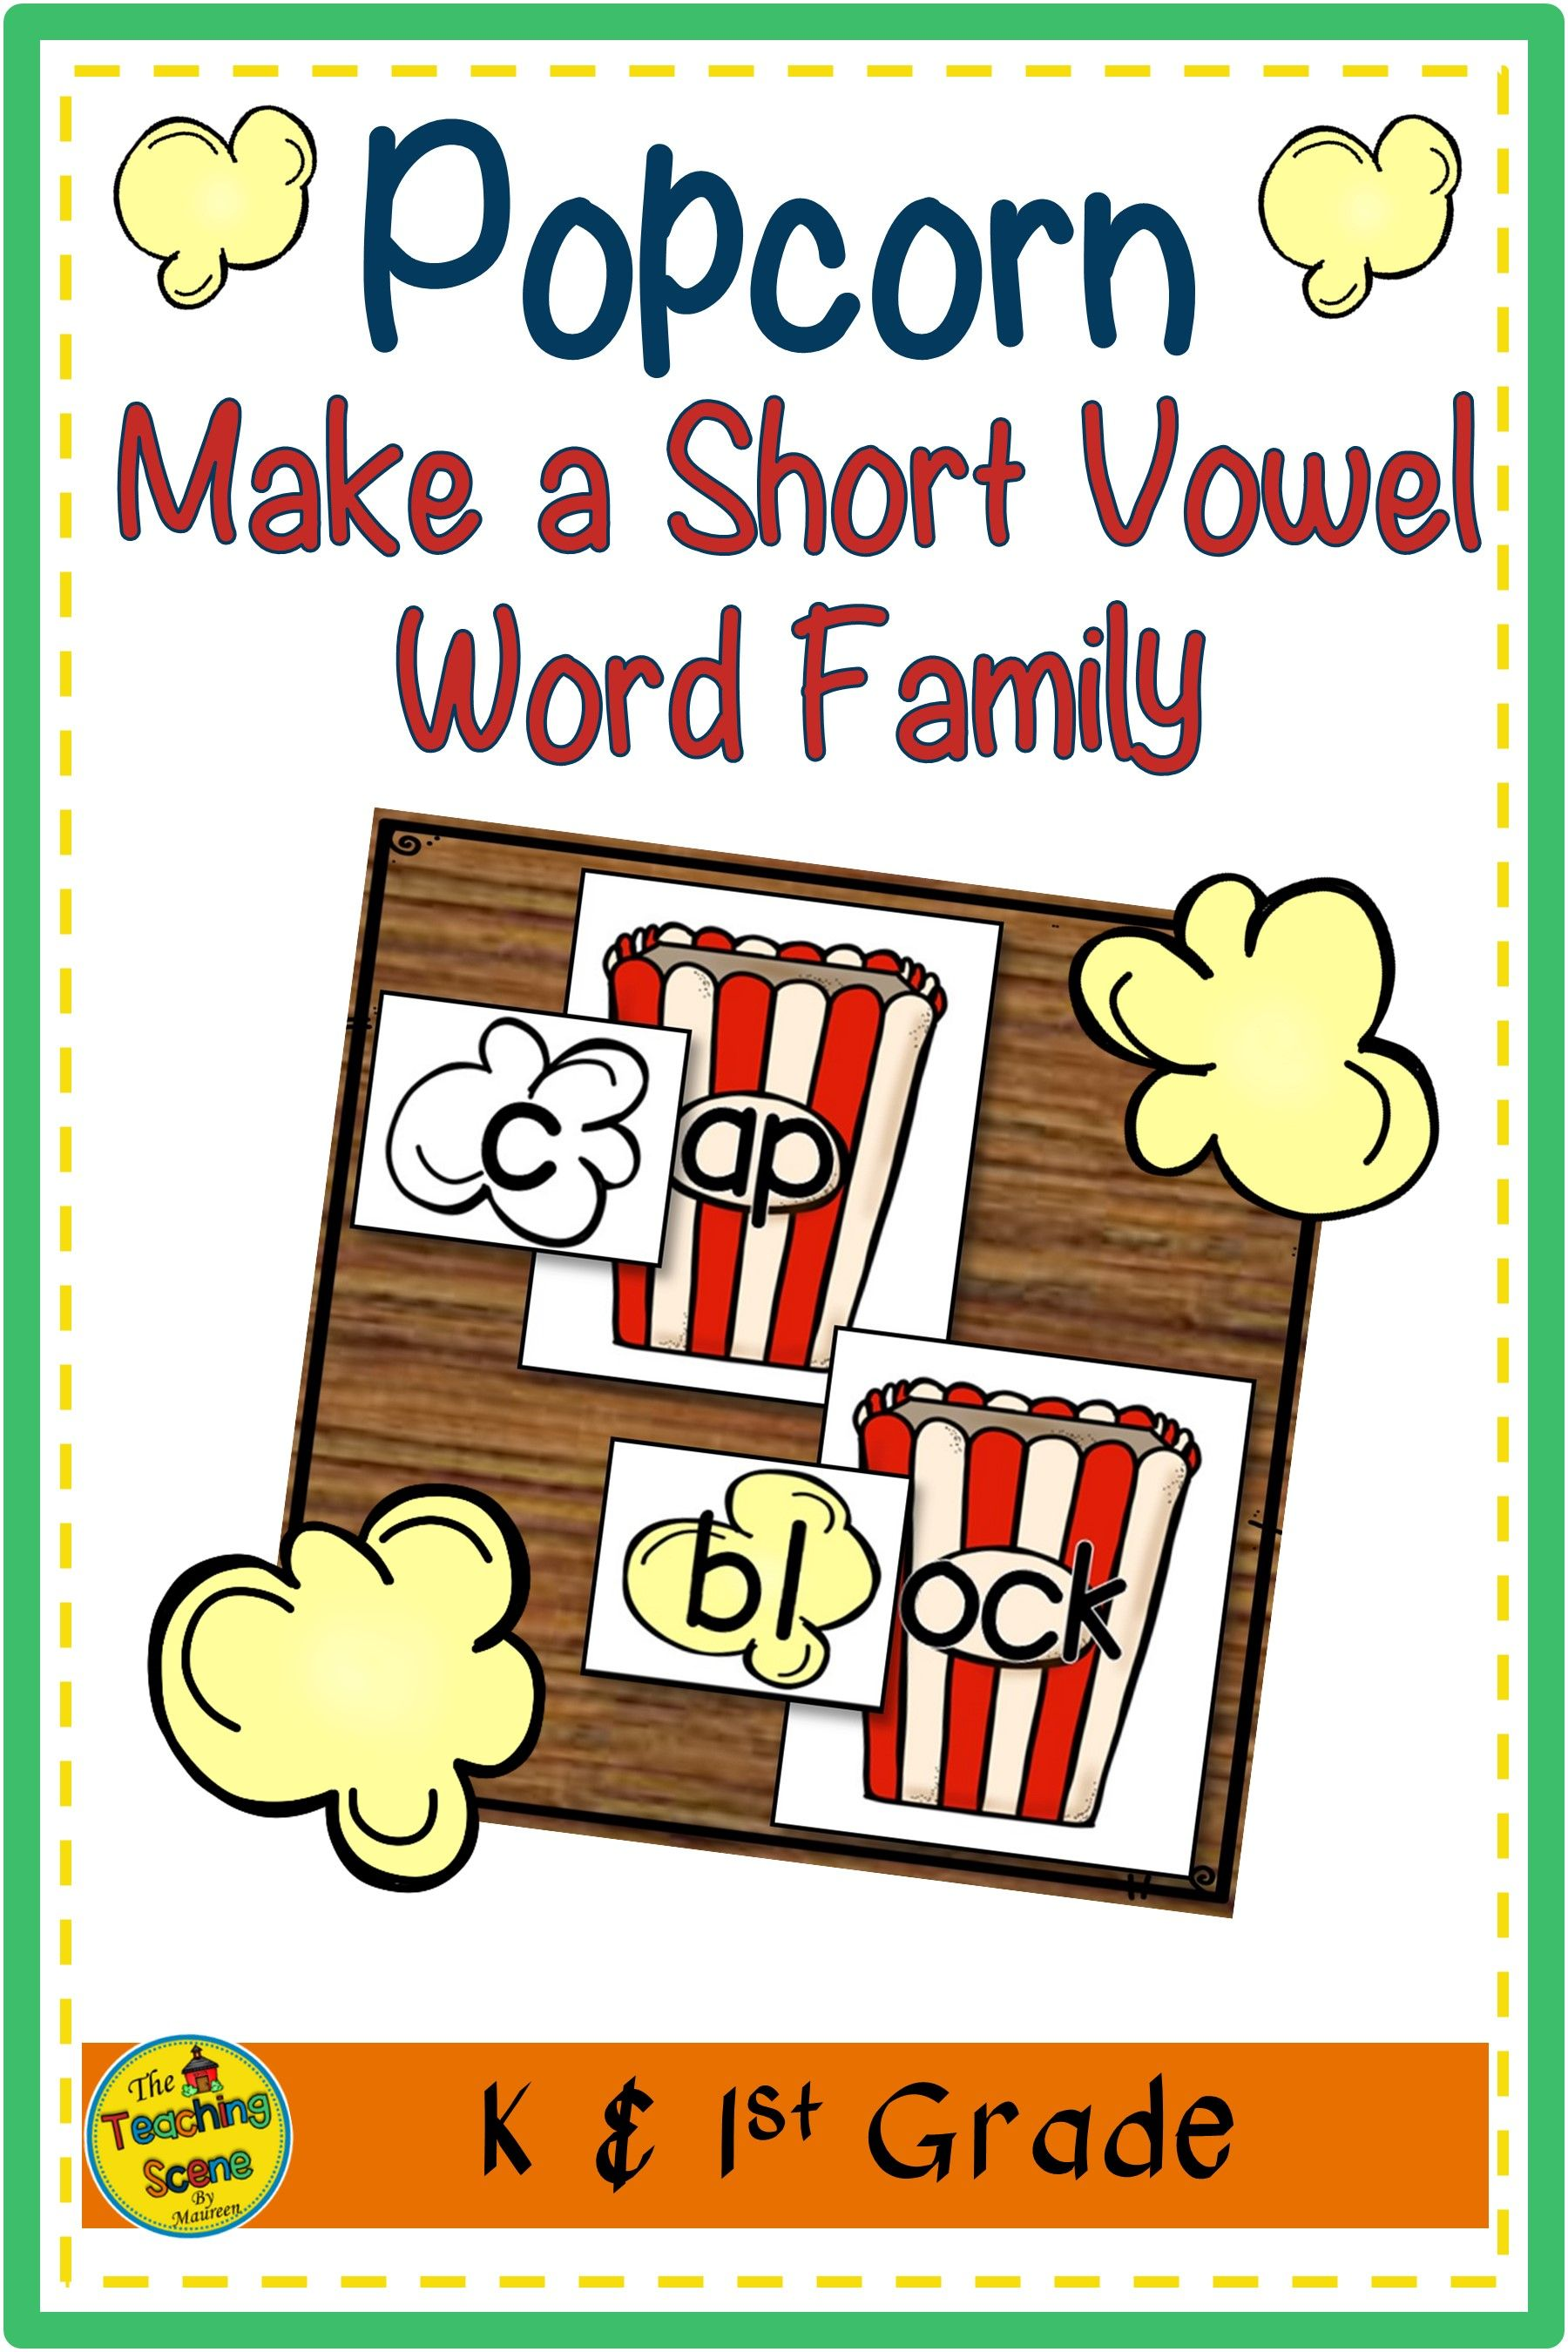 Popcorn Letter Amp Sound Match Game In